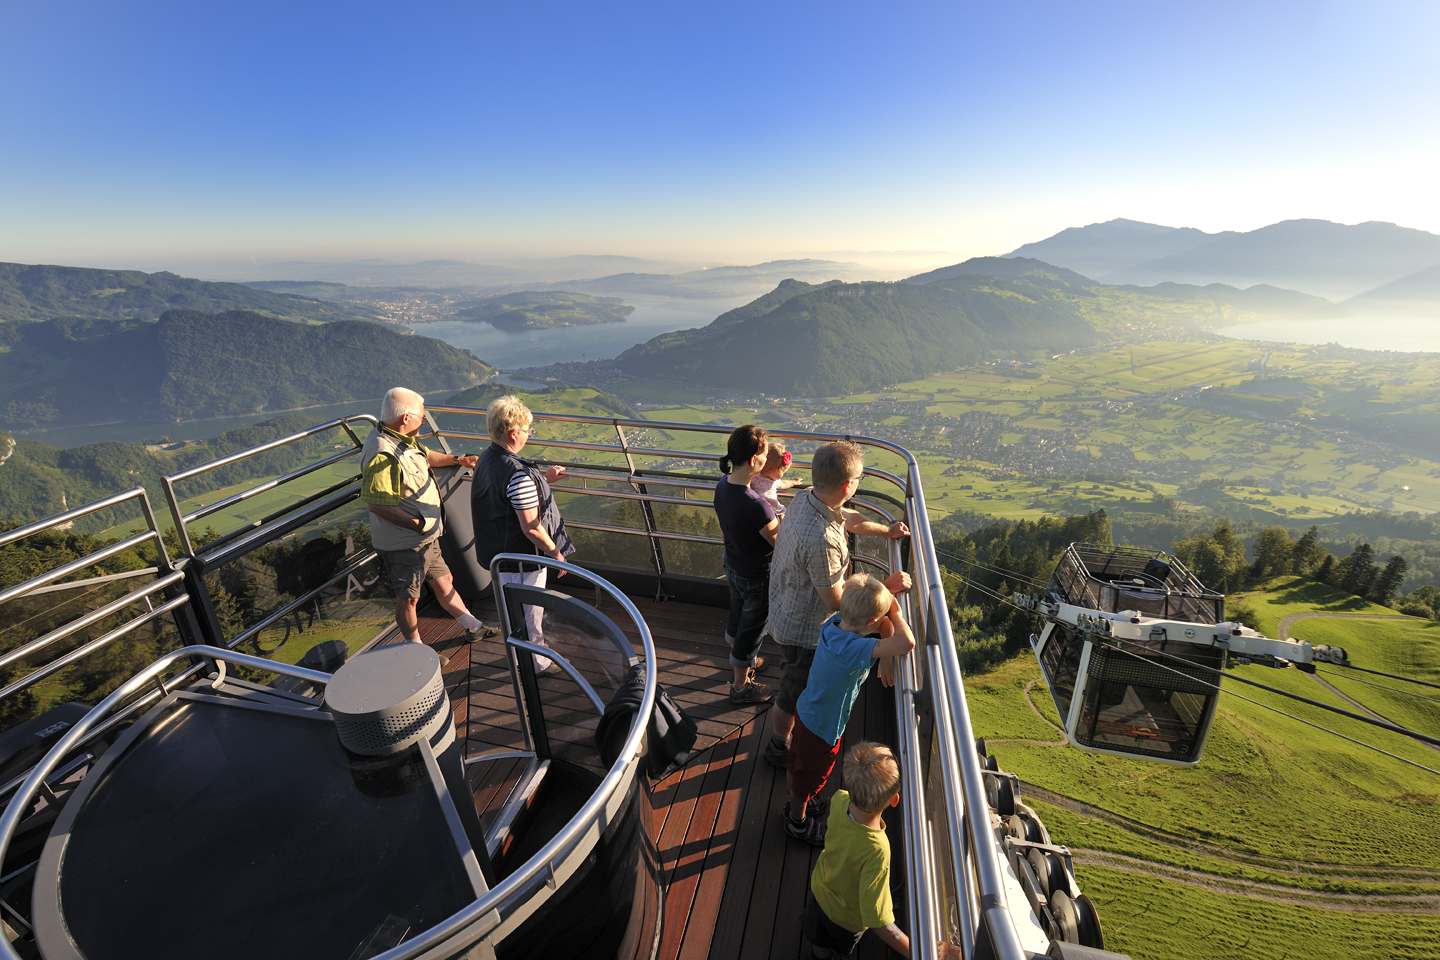 On the upper deck of the Stanserhorn CabriO